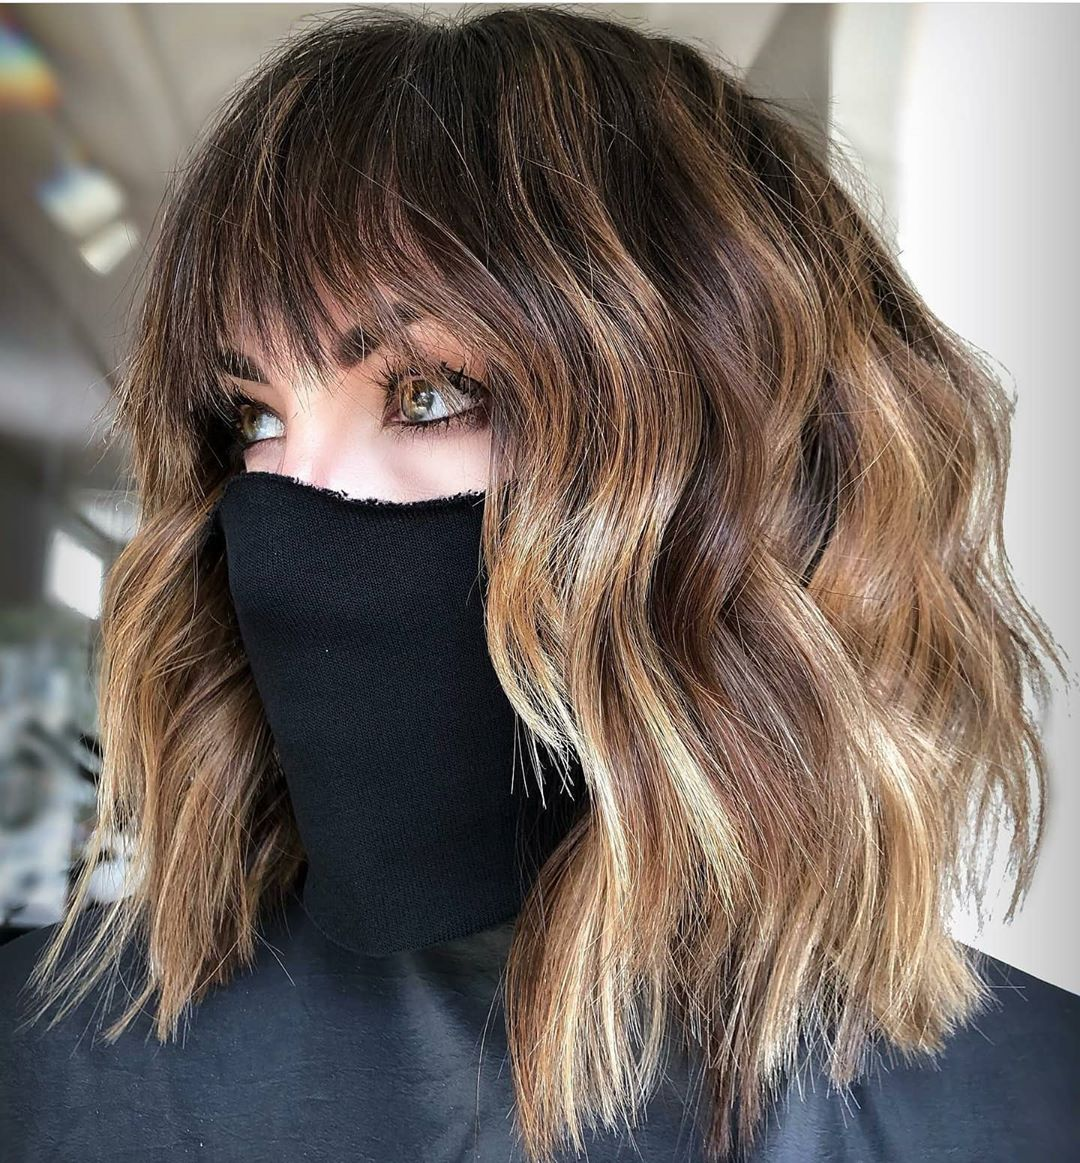 10 lob hairstyles for thick wavy hair  shoulder length